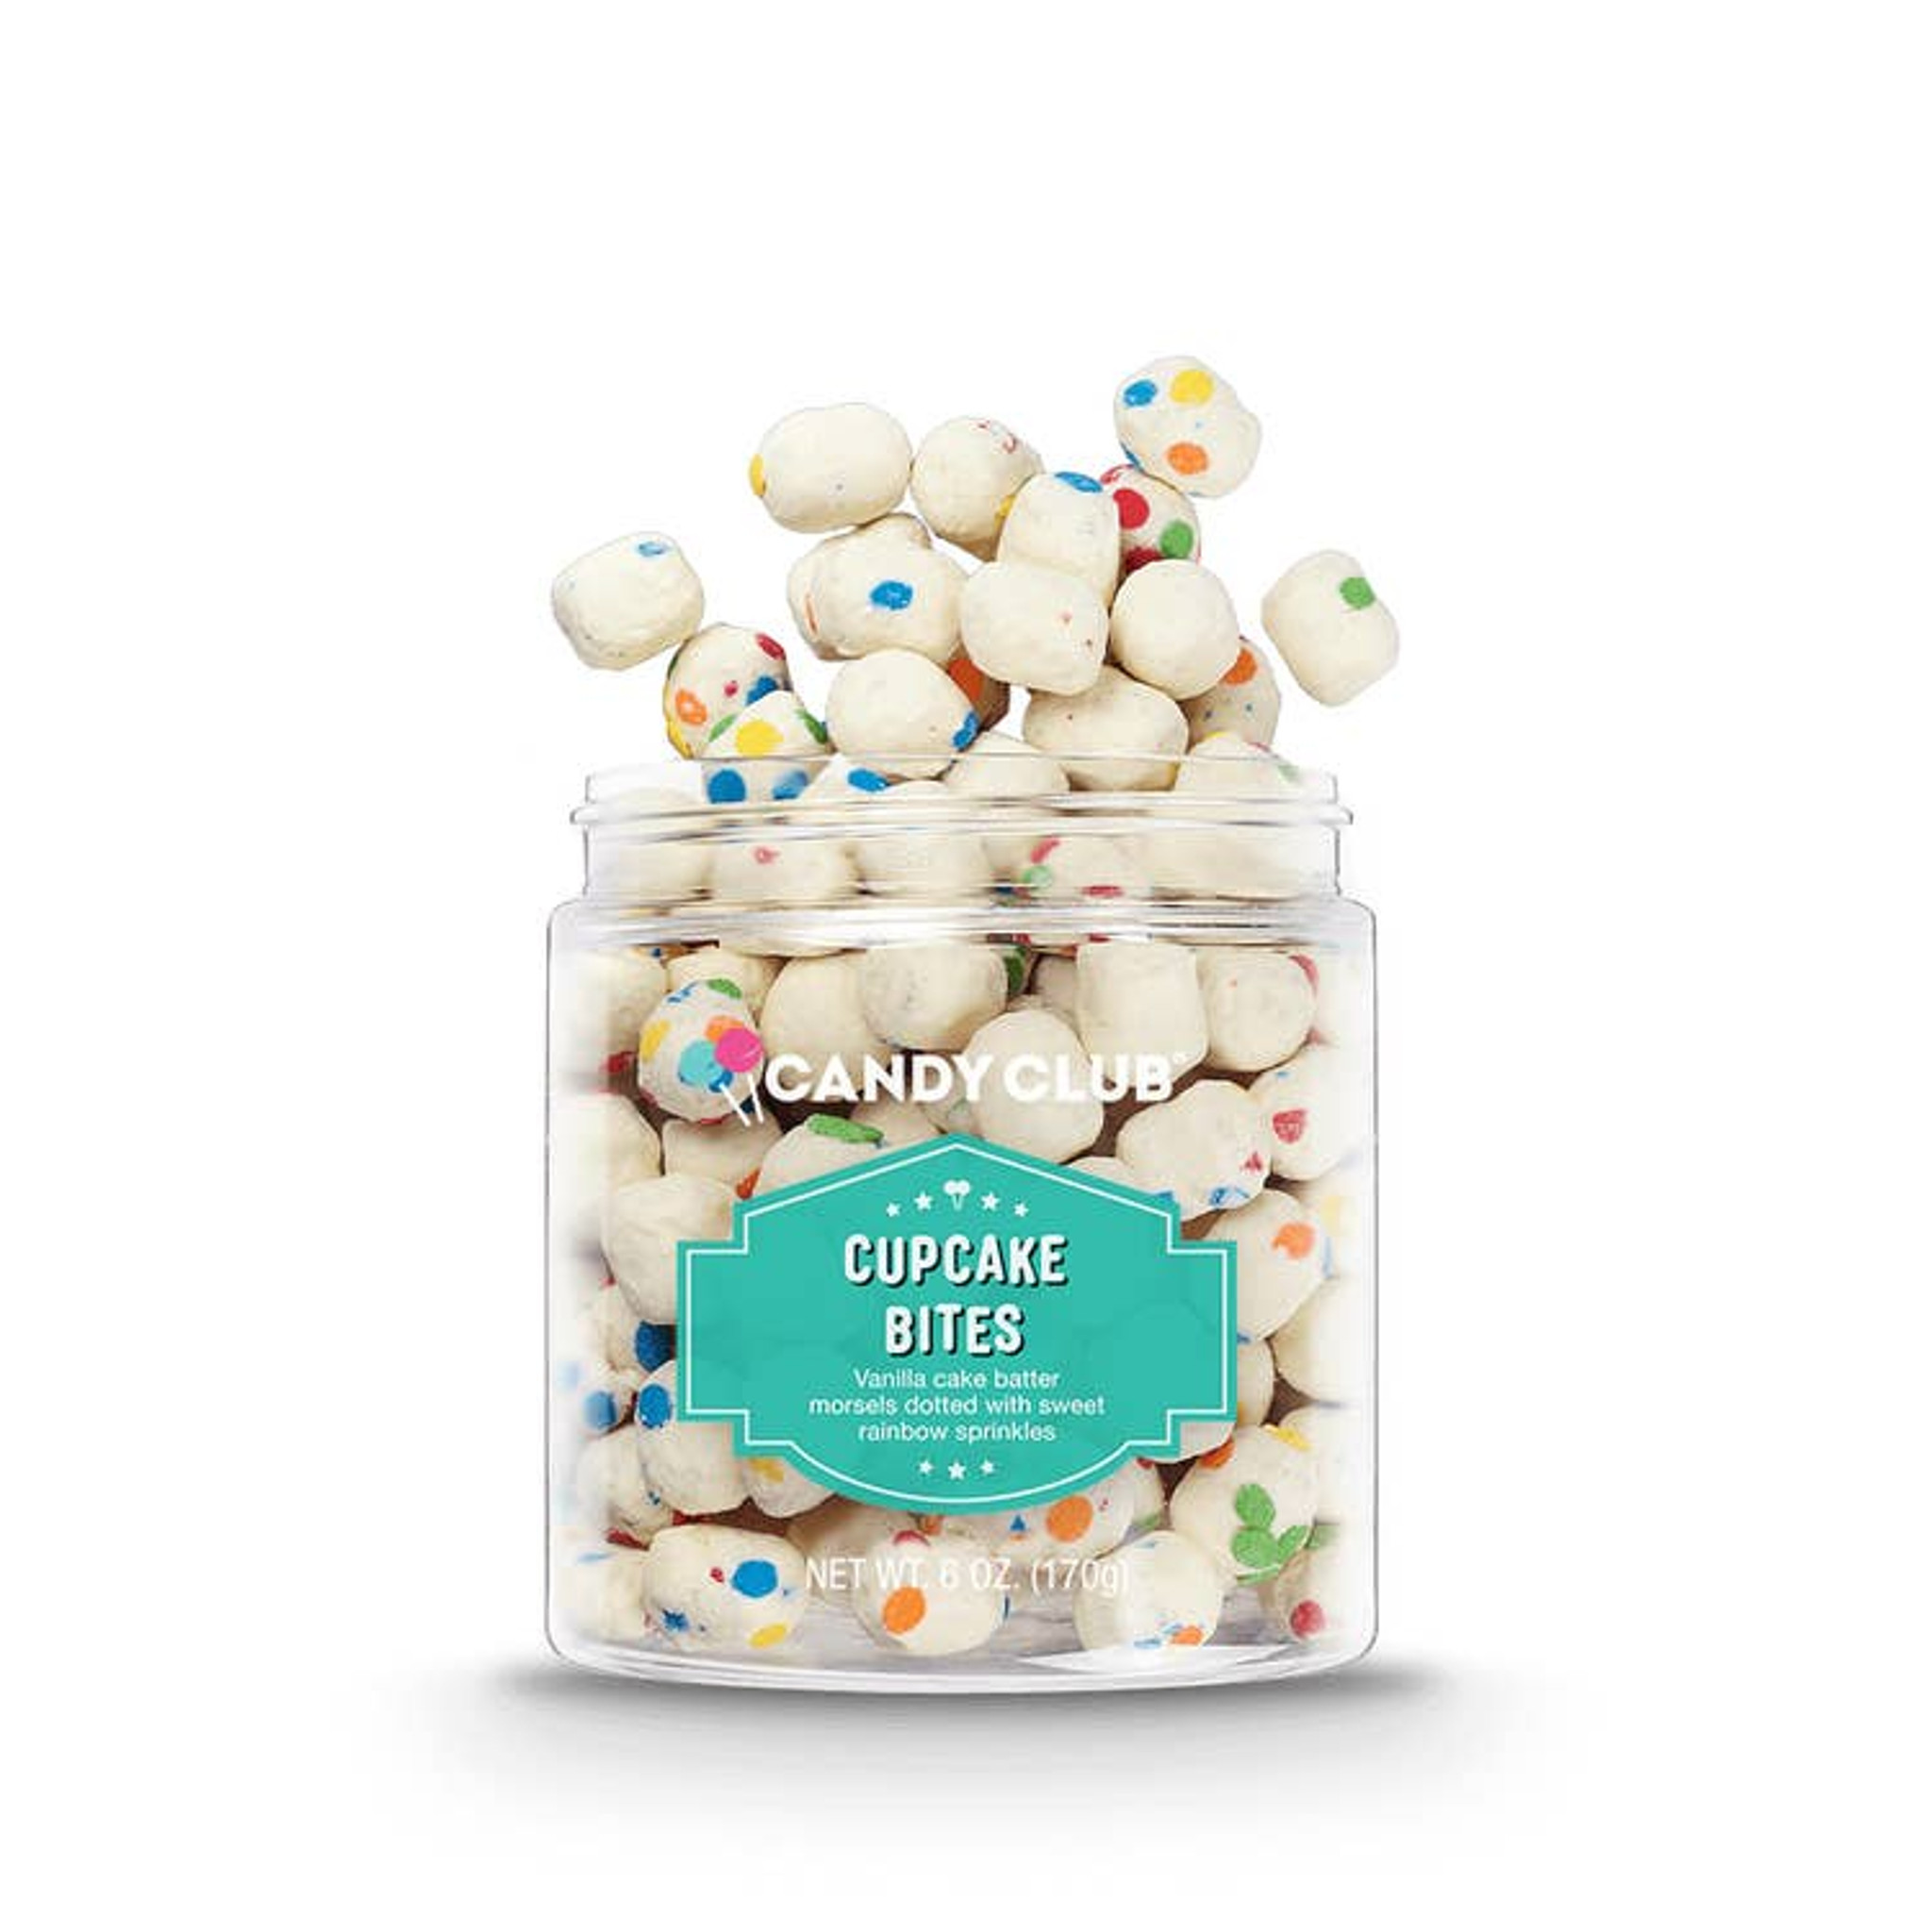 Candy Club Small Jar